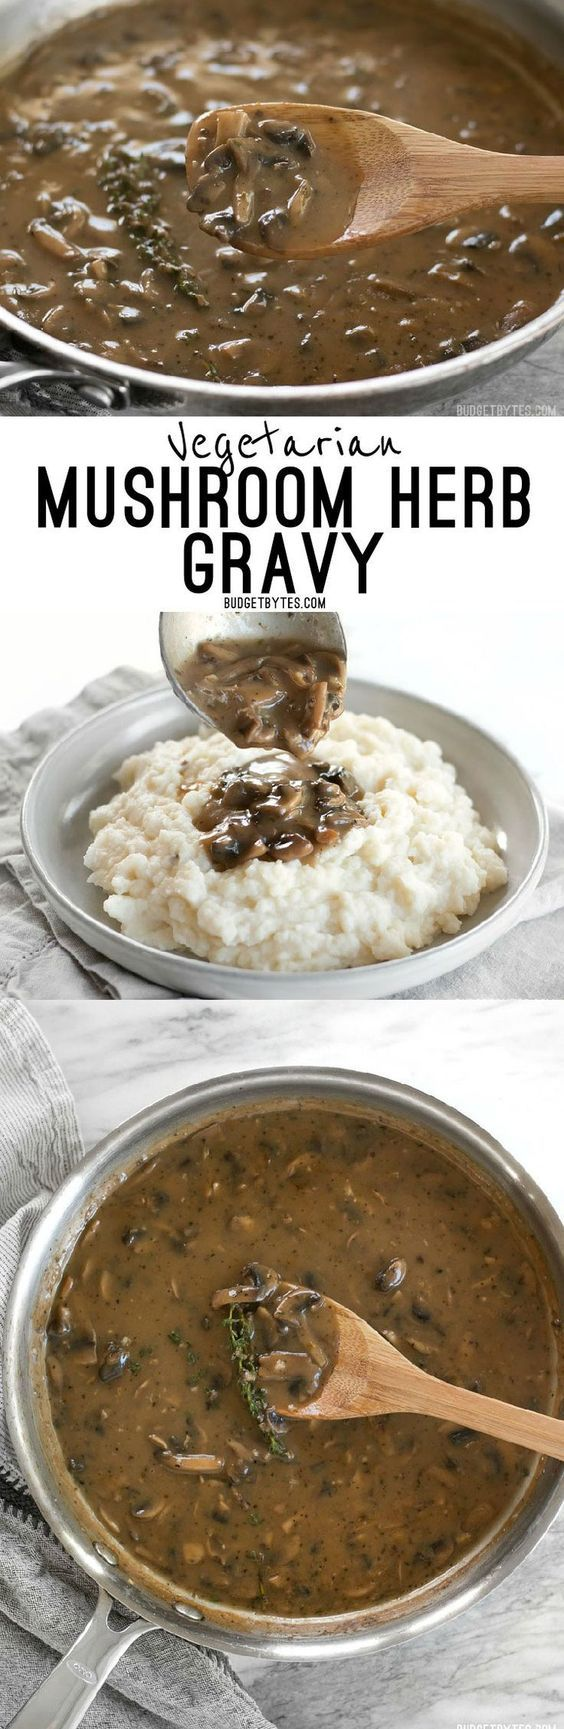 This one quick, easy, and insanely flavorful Mushroom Herb Gravy will satisfy both meat eaters and vegetarians alike. * Visit the image link for more details. #baking